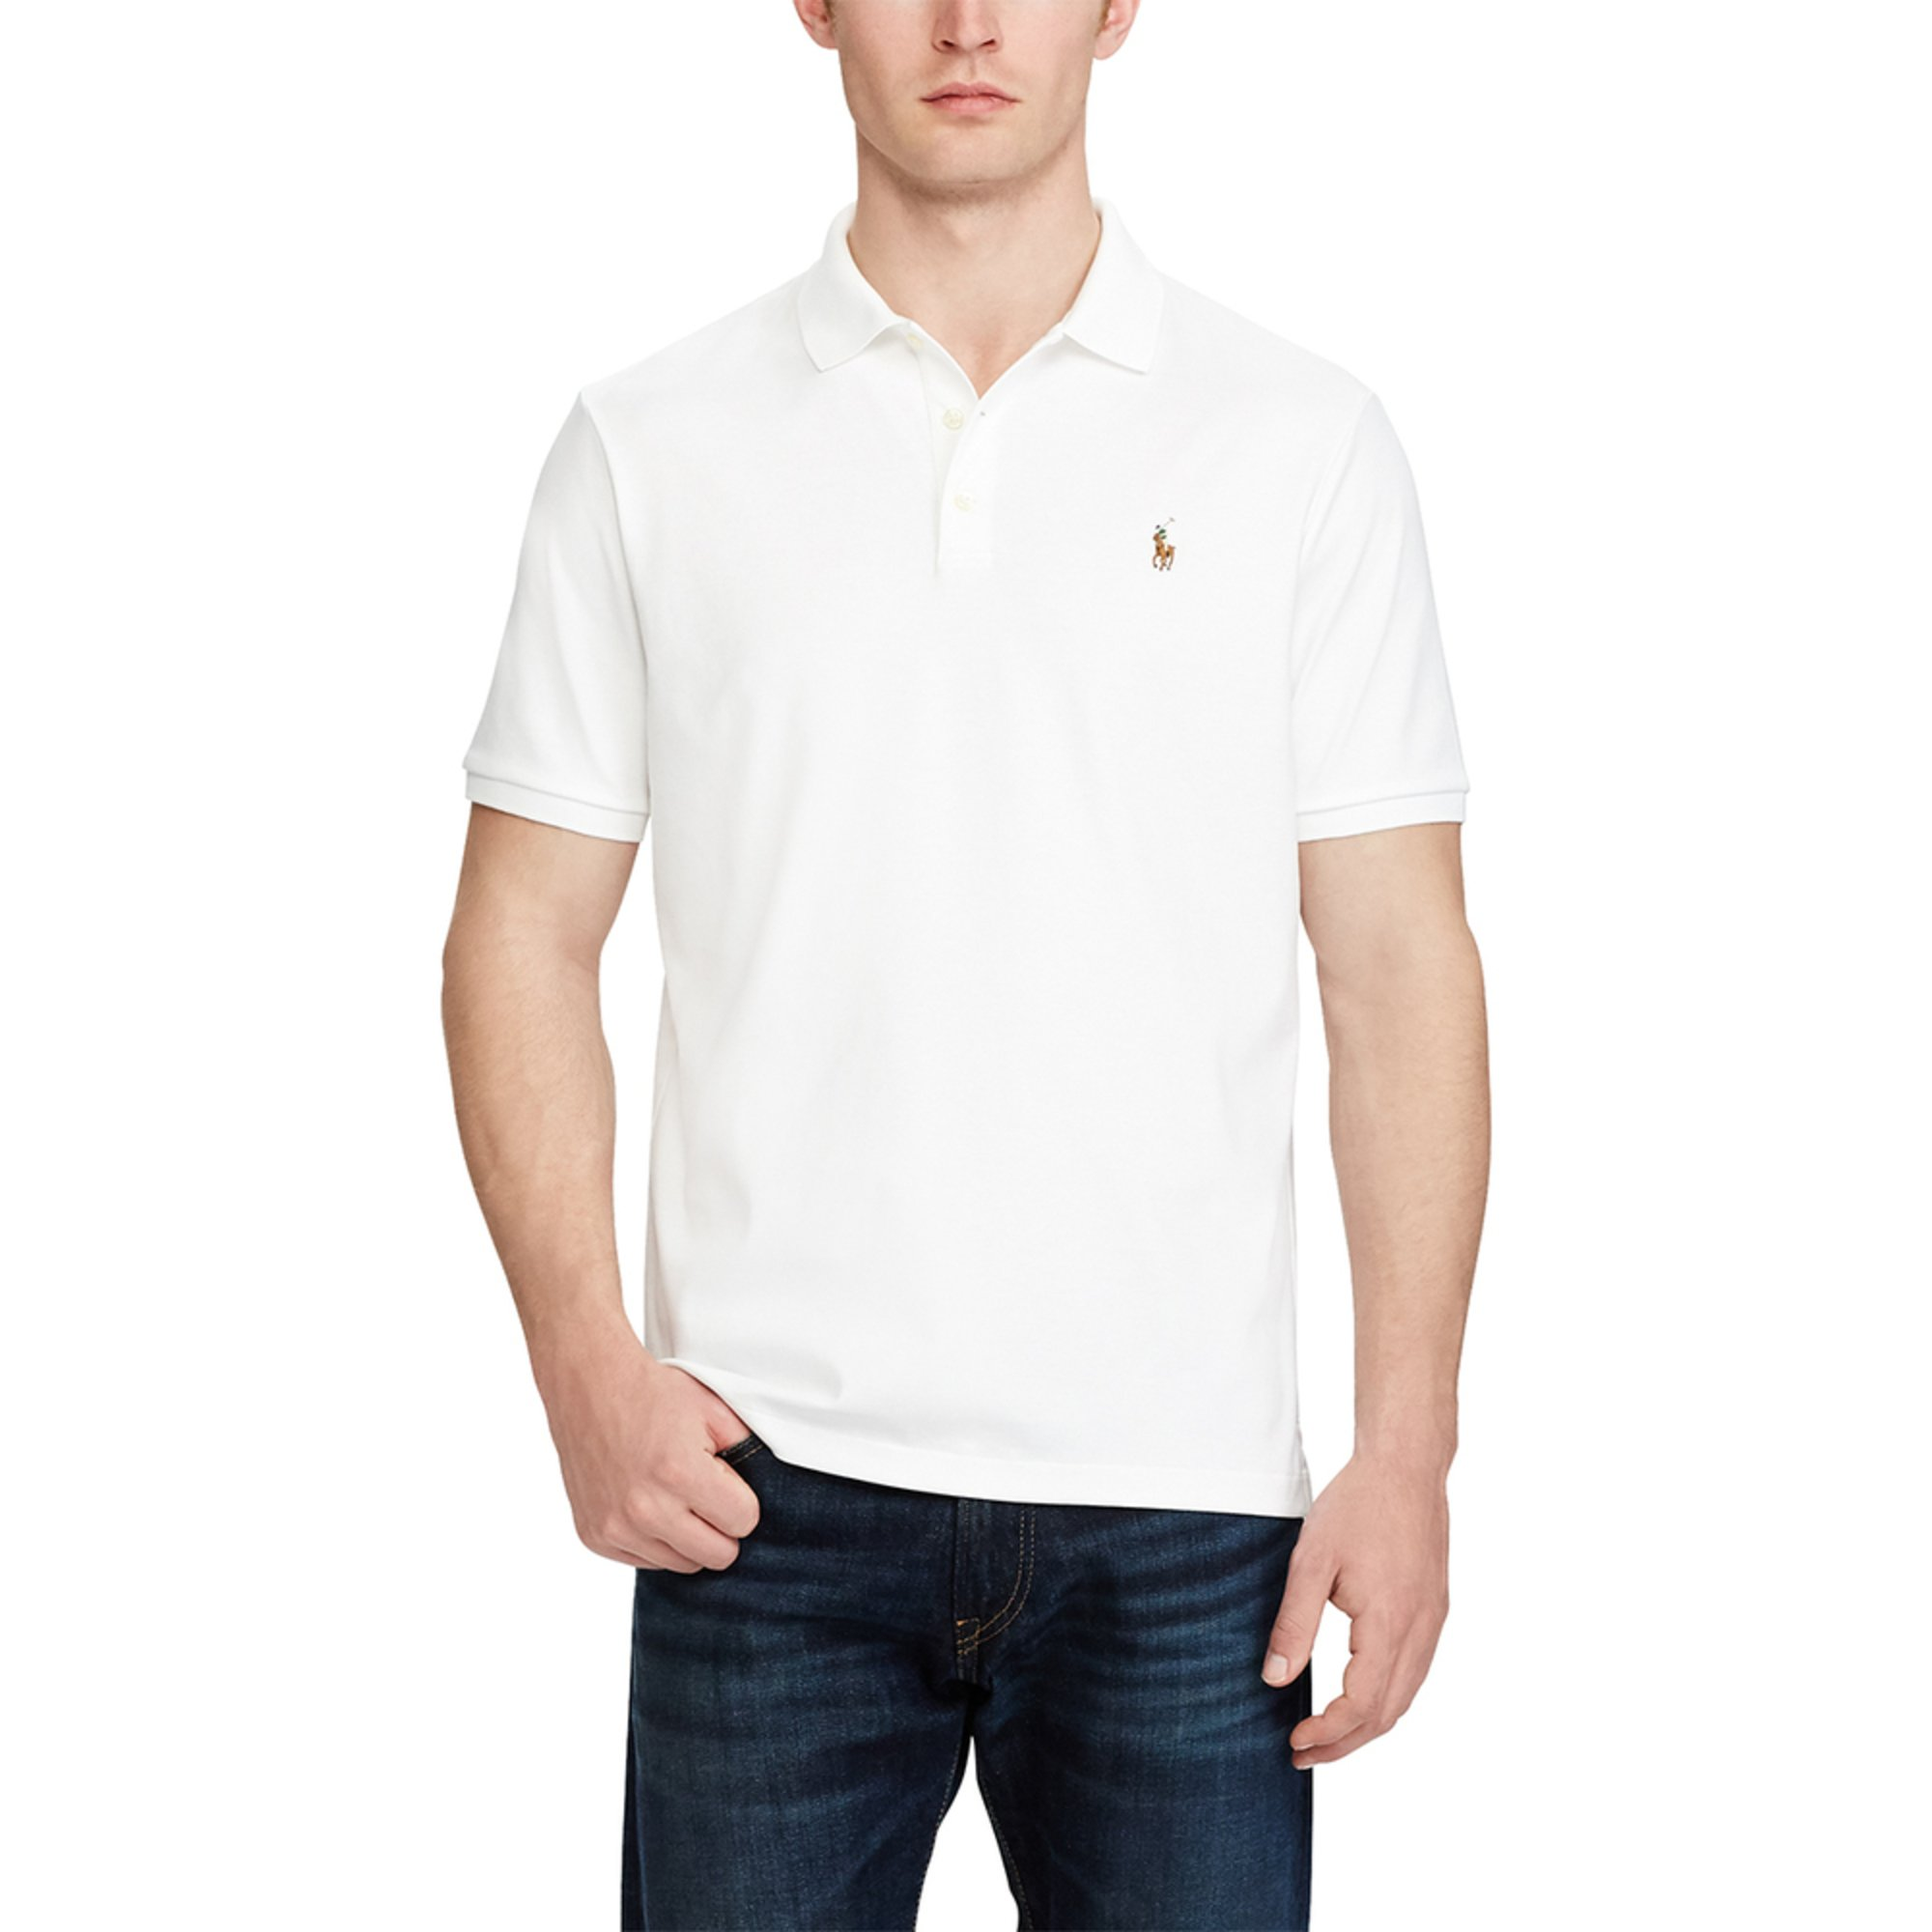 adbaddf3 Polo Ralph Lauren Men's Short Sleeve Pima Soft Touch Classic Fit ...